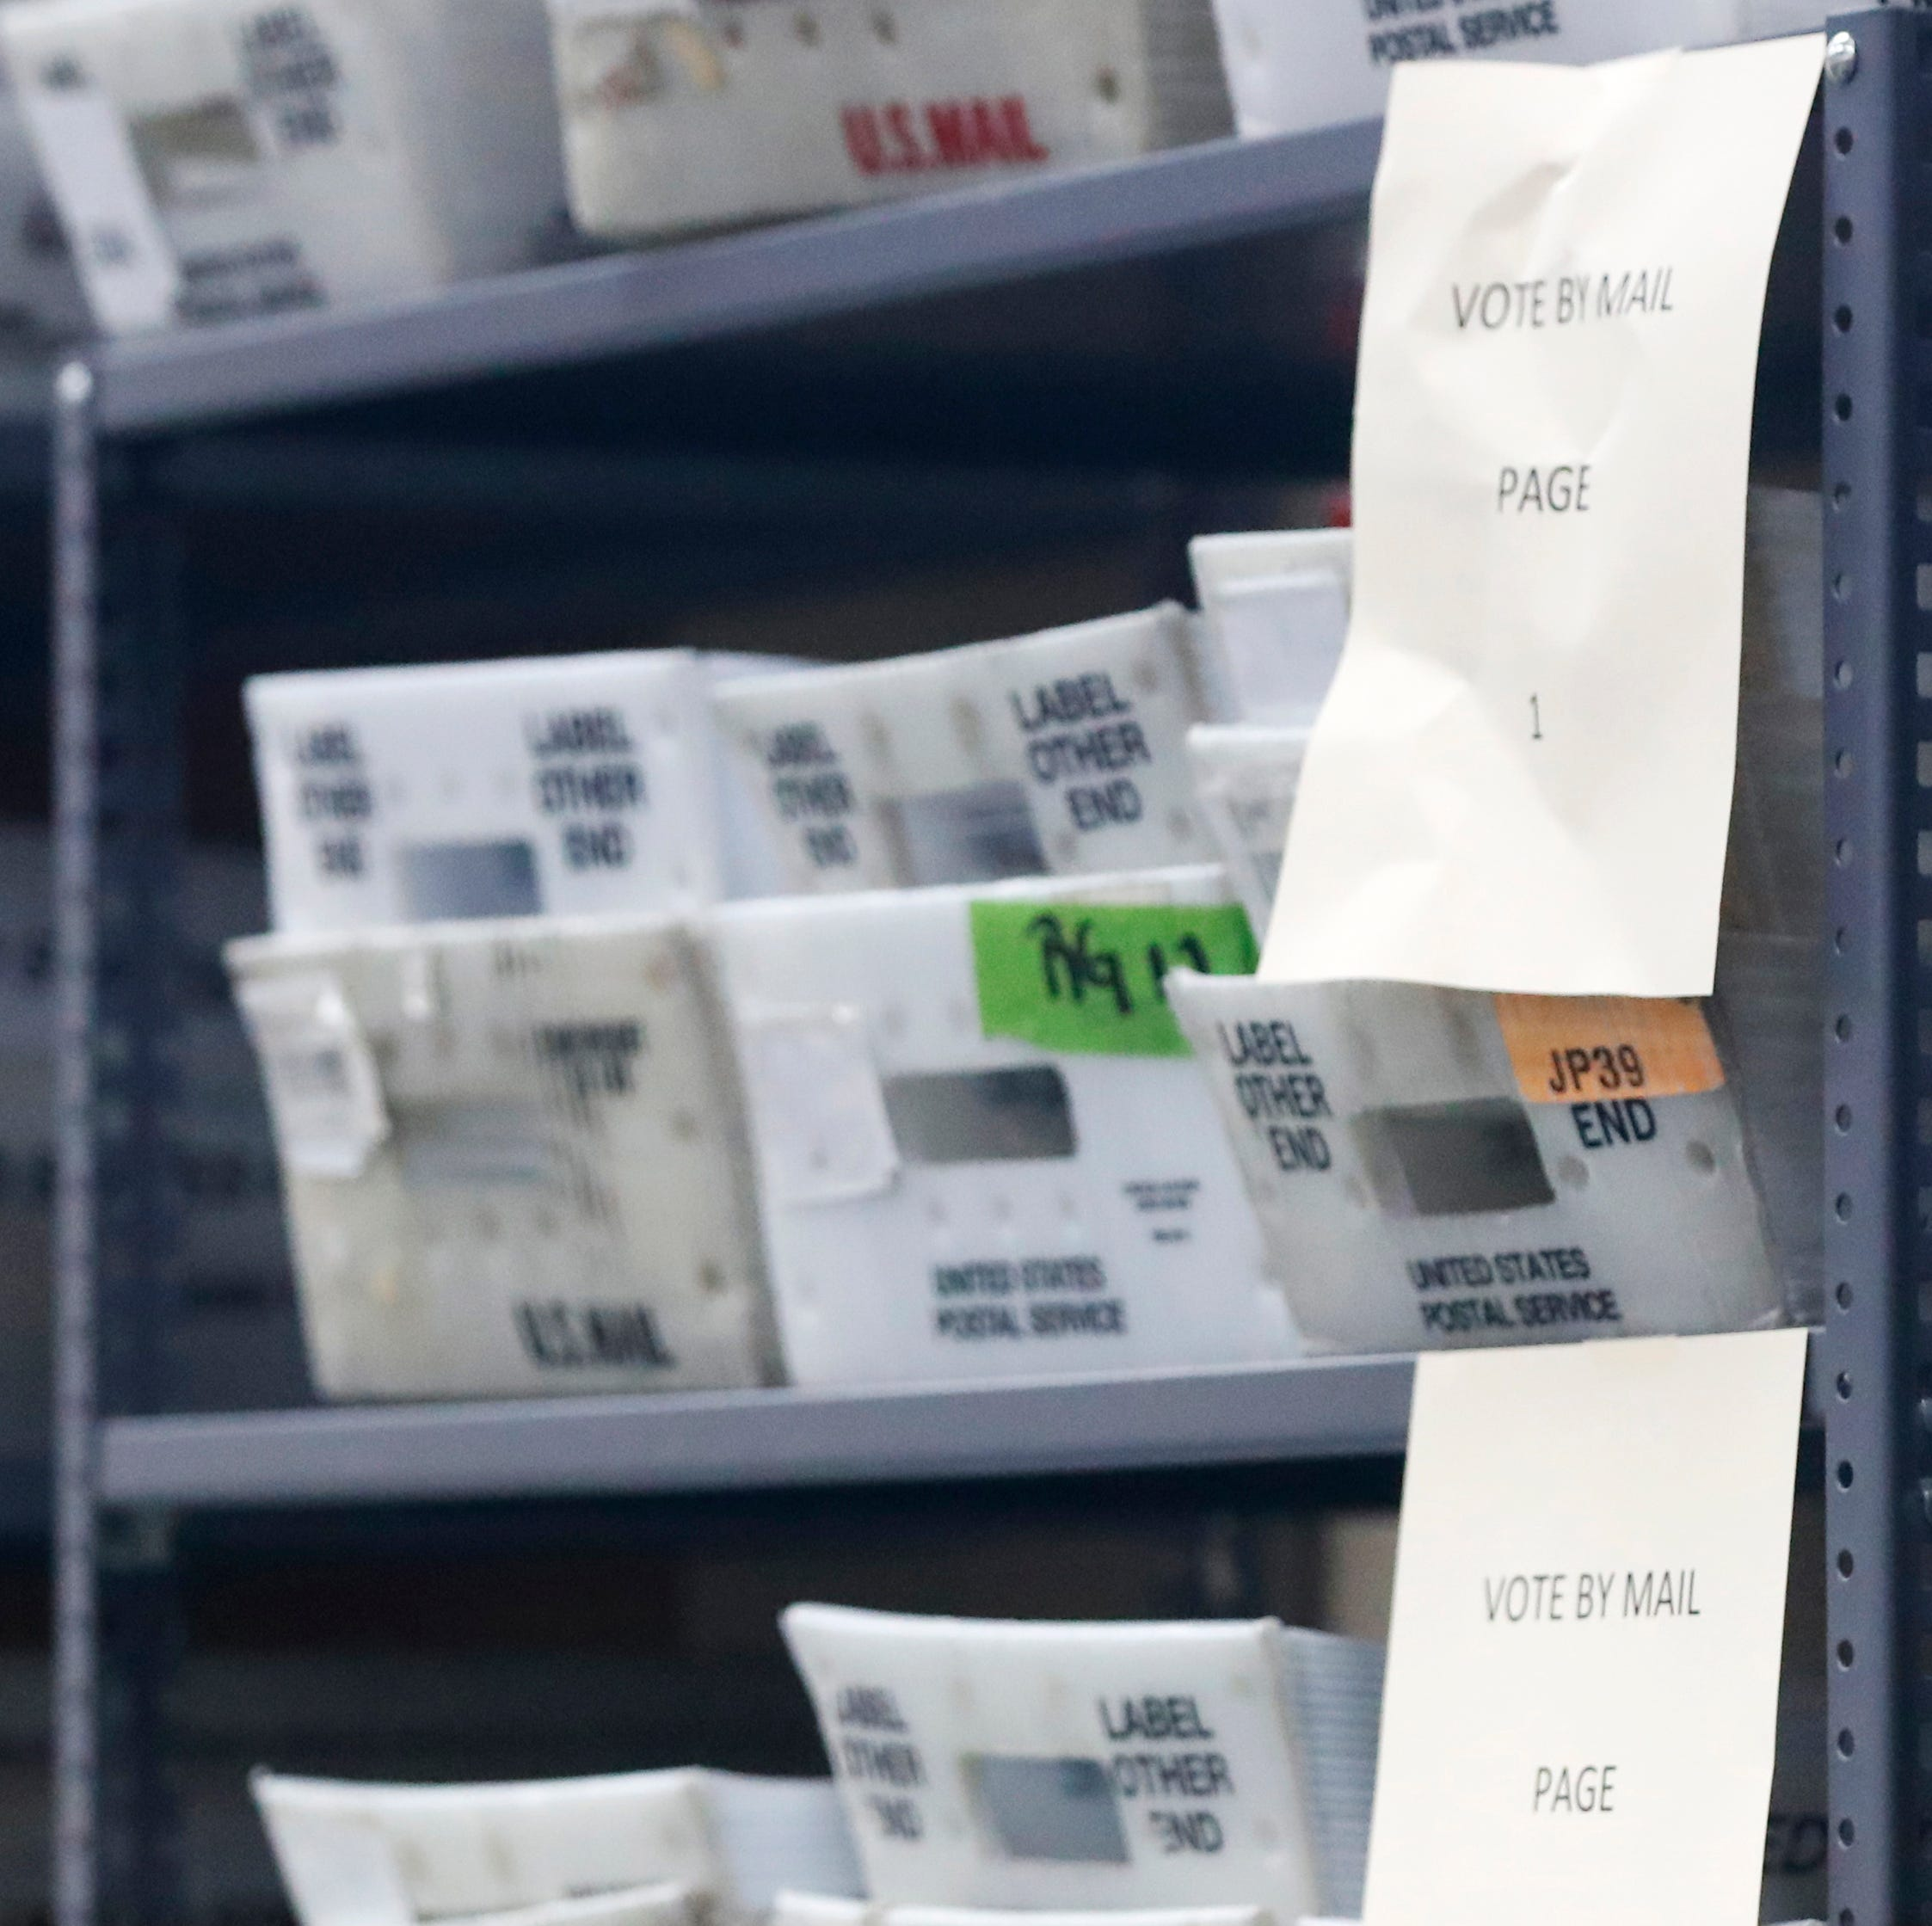 Florida Dems planned to use altered forms to fix mail ballots across state after deadline